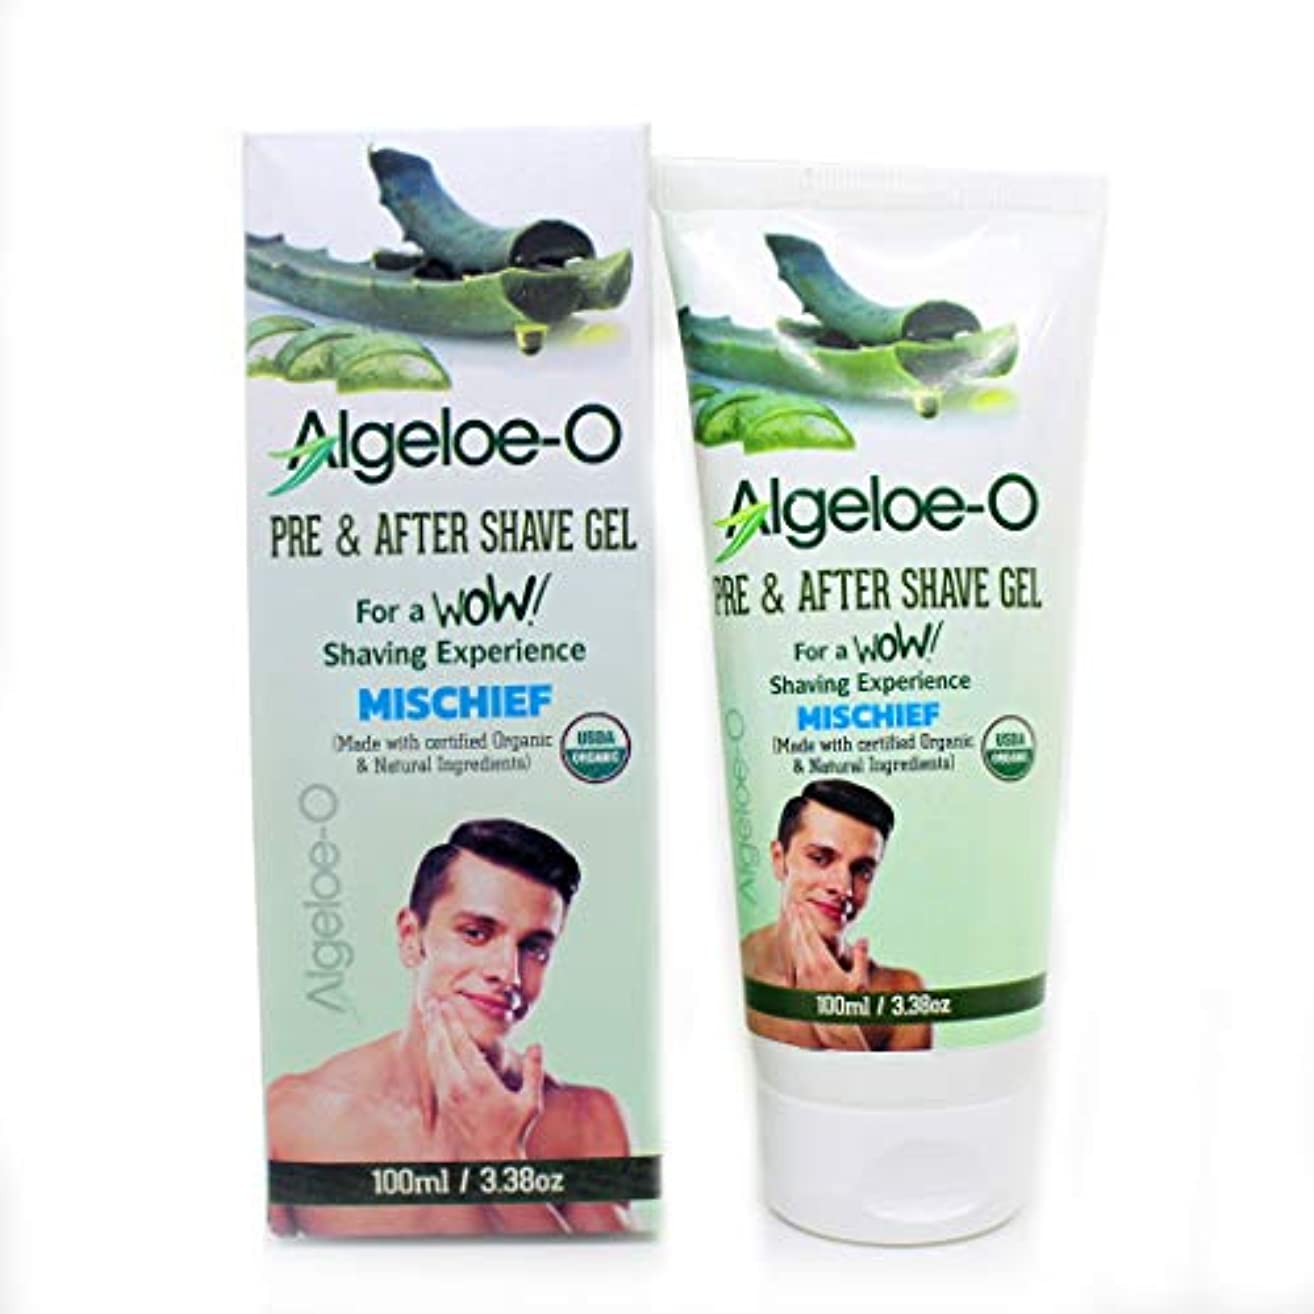 Aloevera Pre And After Shave Gel - Algeloe O Made With Certified USDA Organic And Natural Ingredients - Mischief...